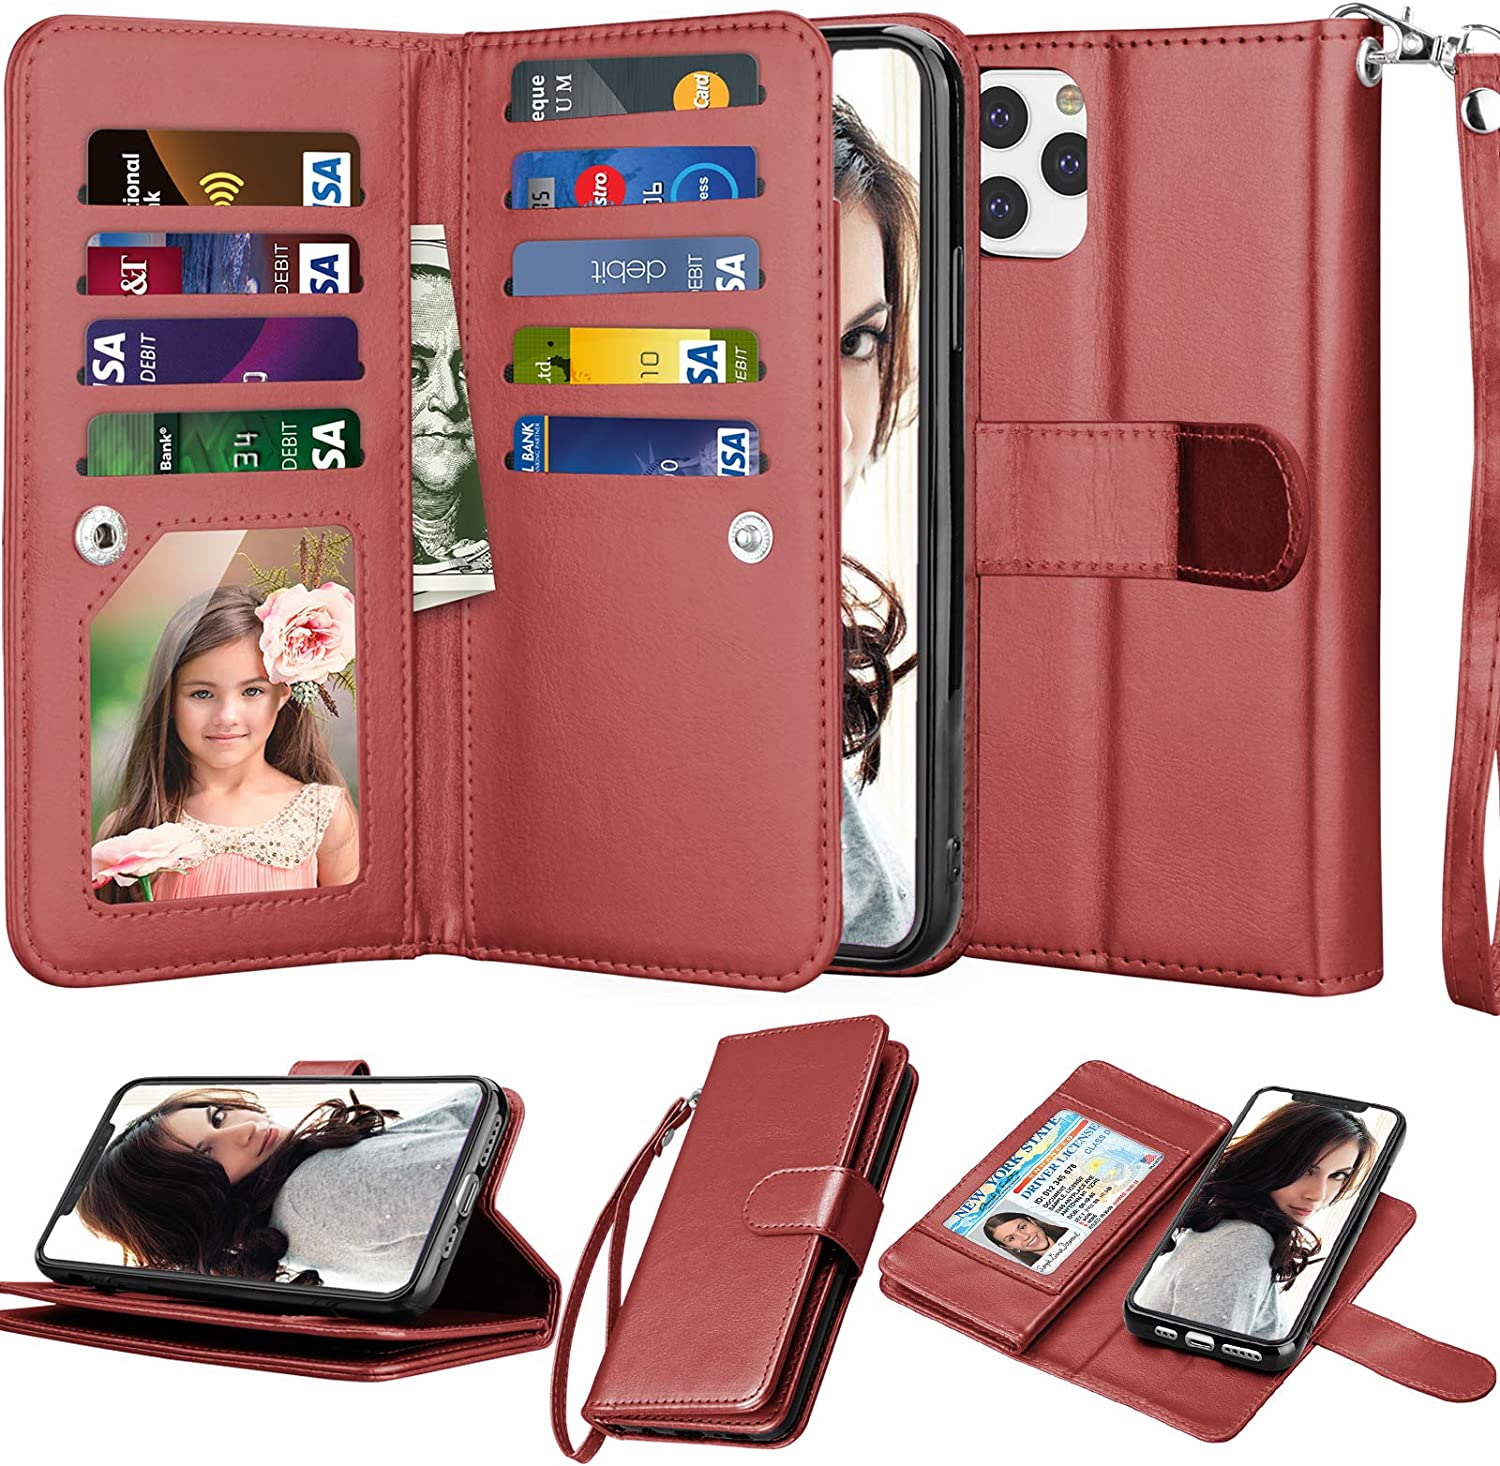 Njjex Wallet Case for iPhone 11 PRO Max 2019, for iPhone 11 PRO Max Case (6.5